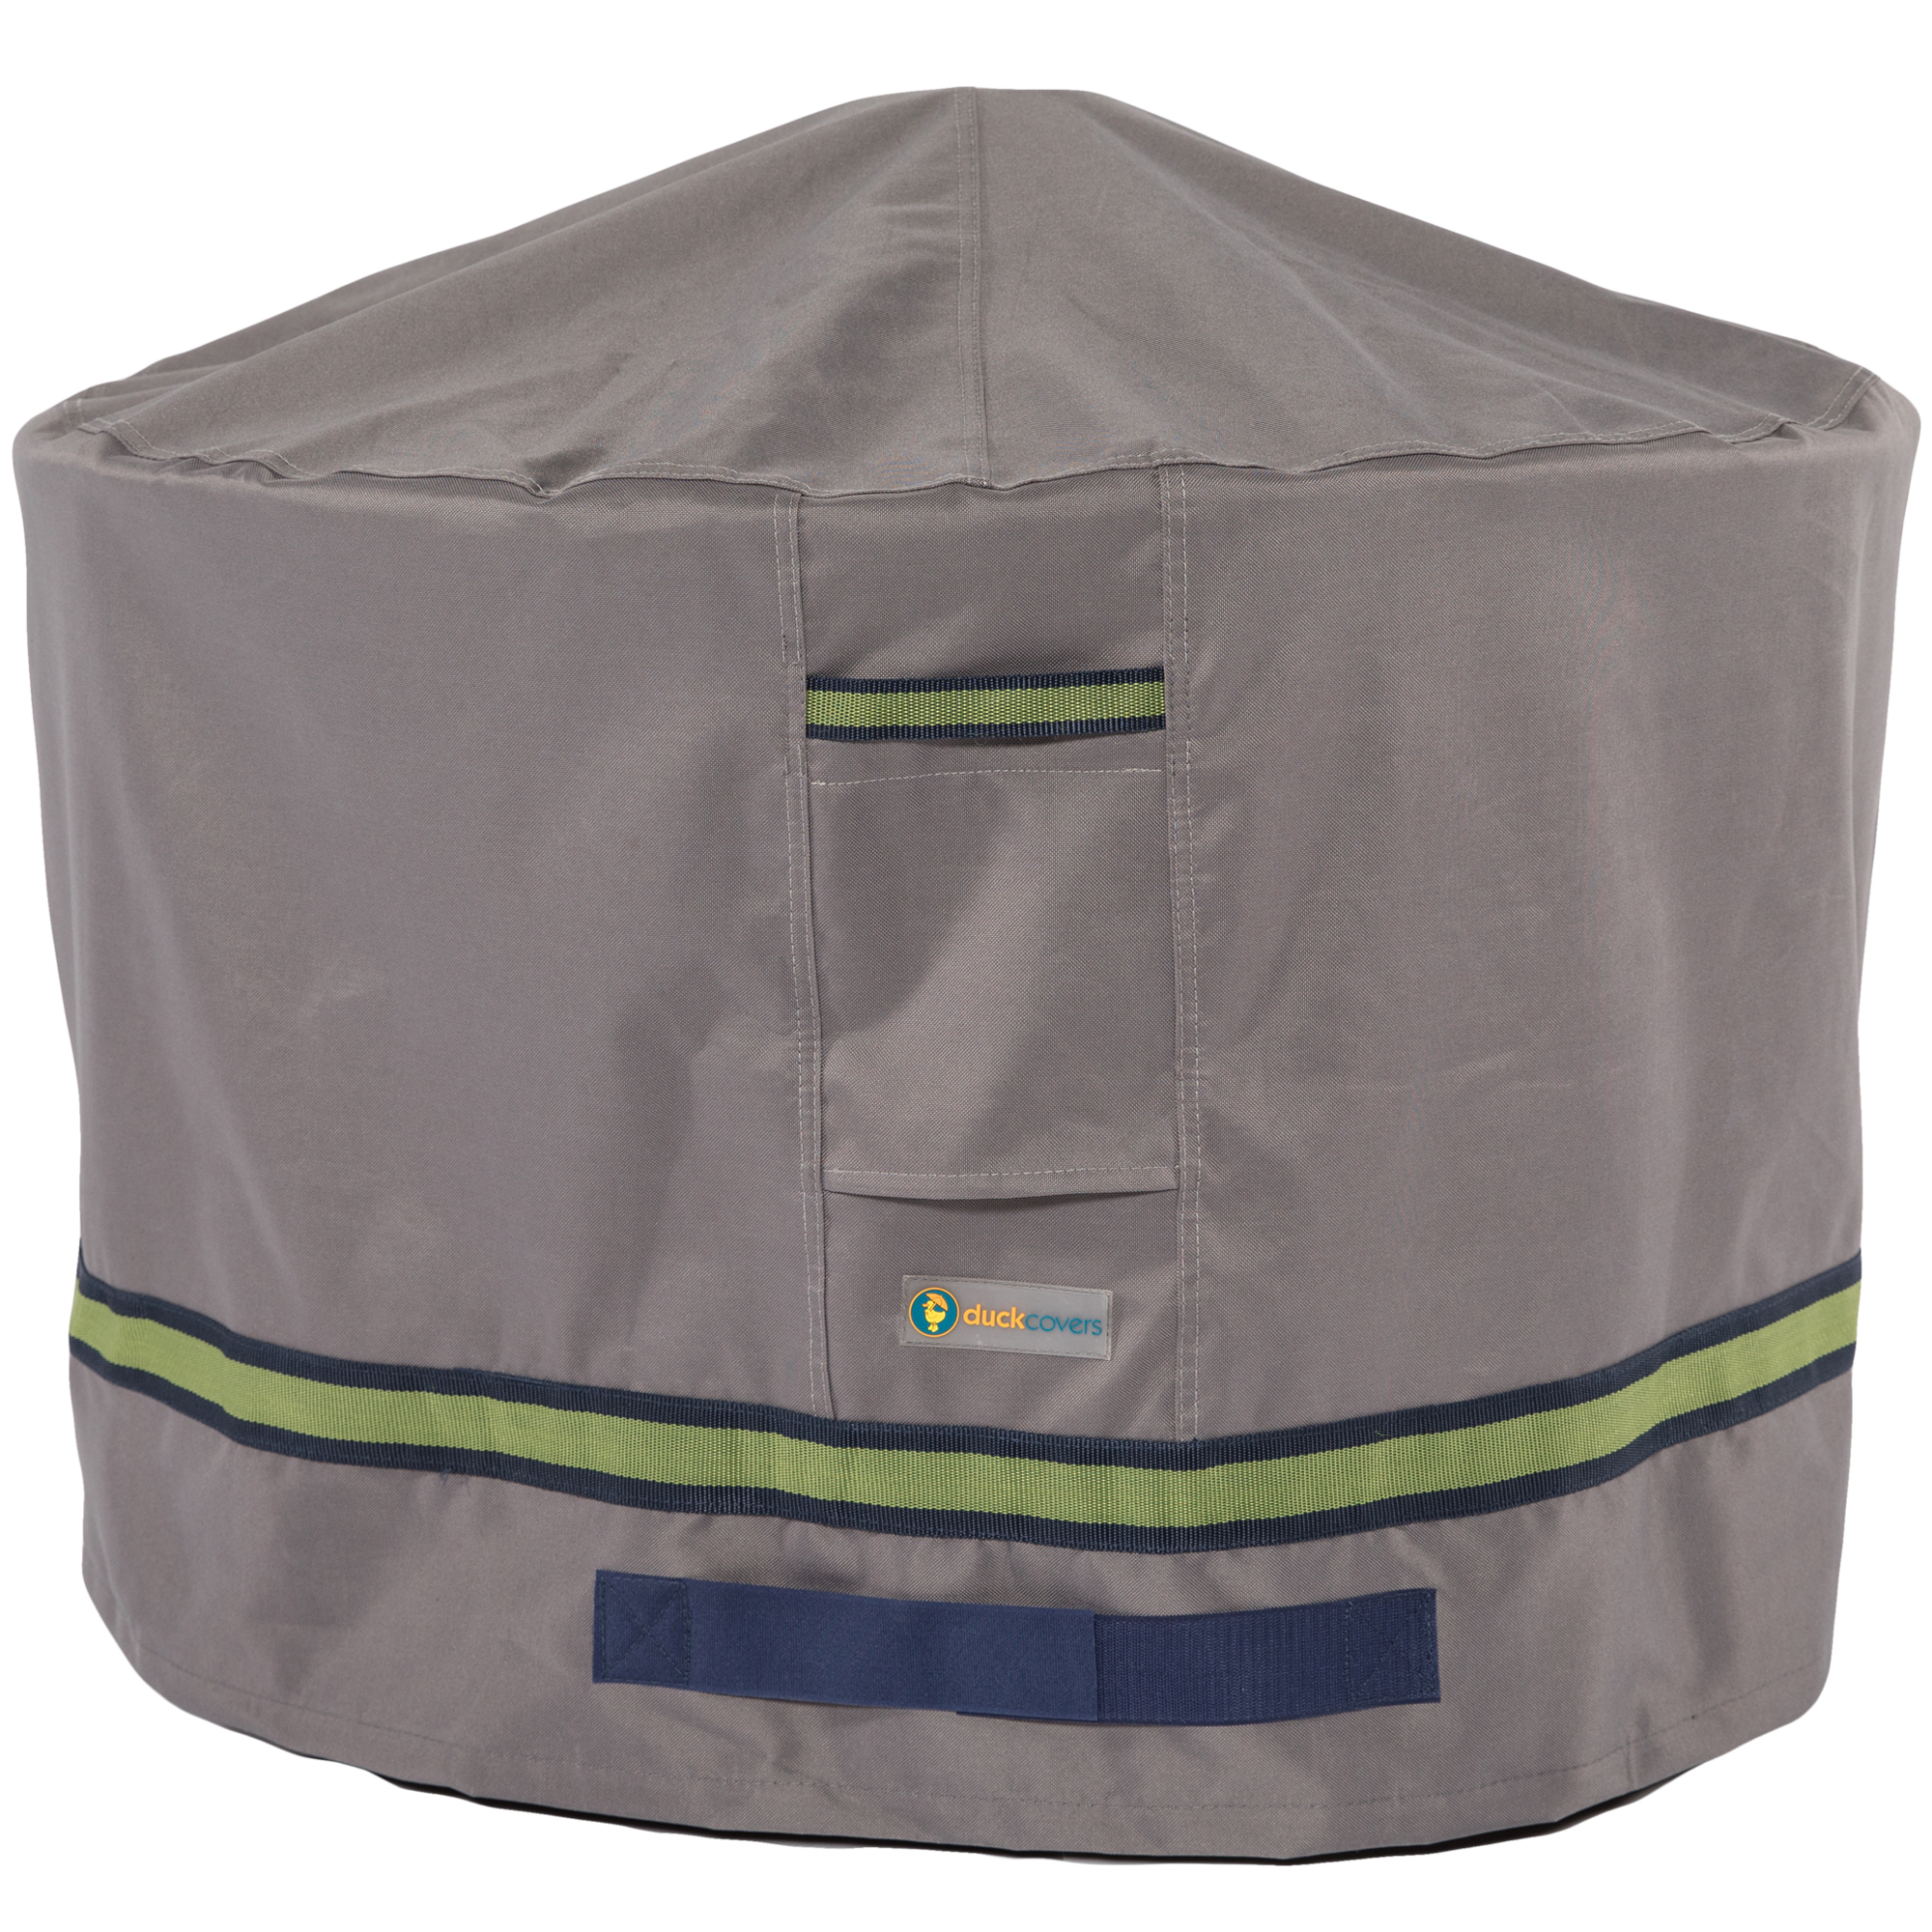 Duck Covers Soteria RainProof 36 in. Round Fire Pit Cover